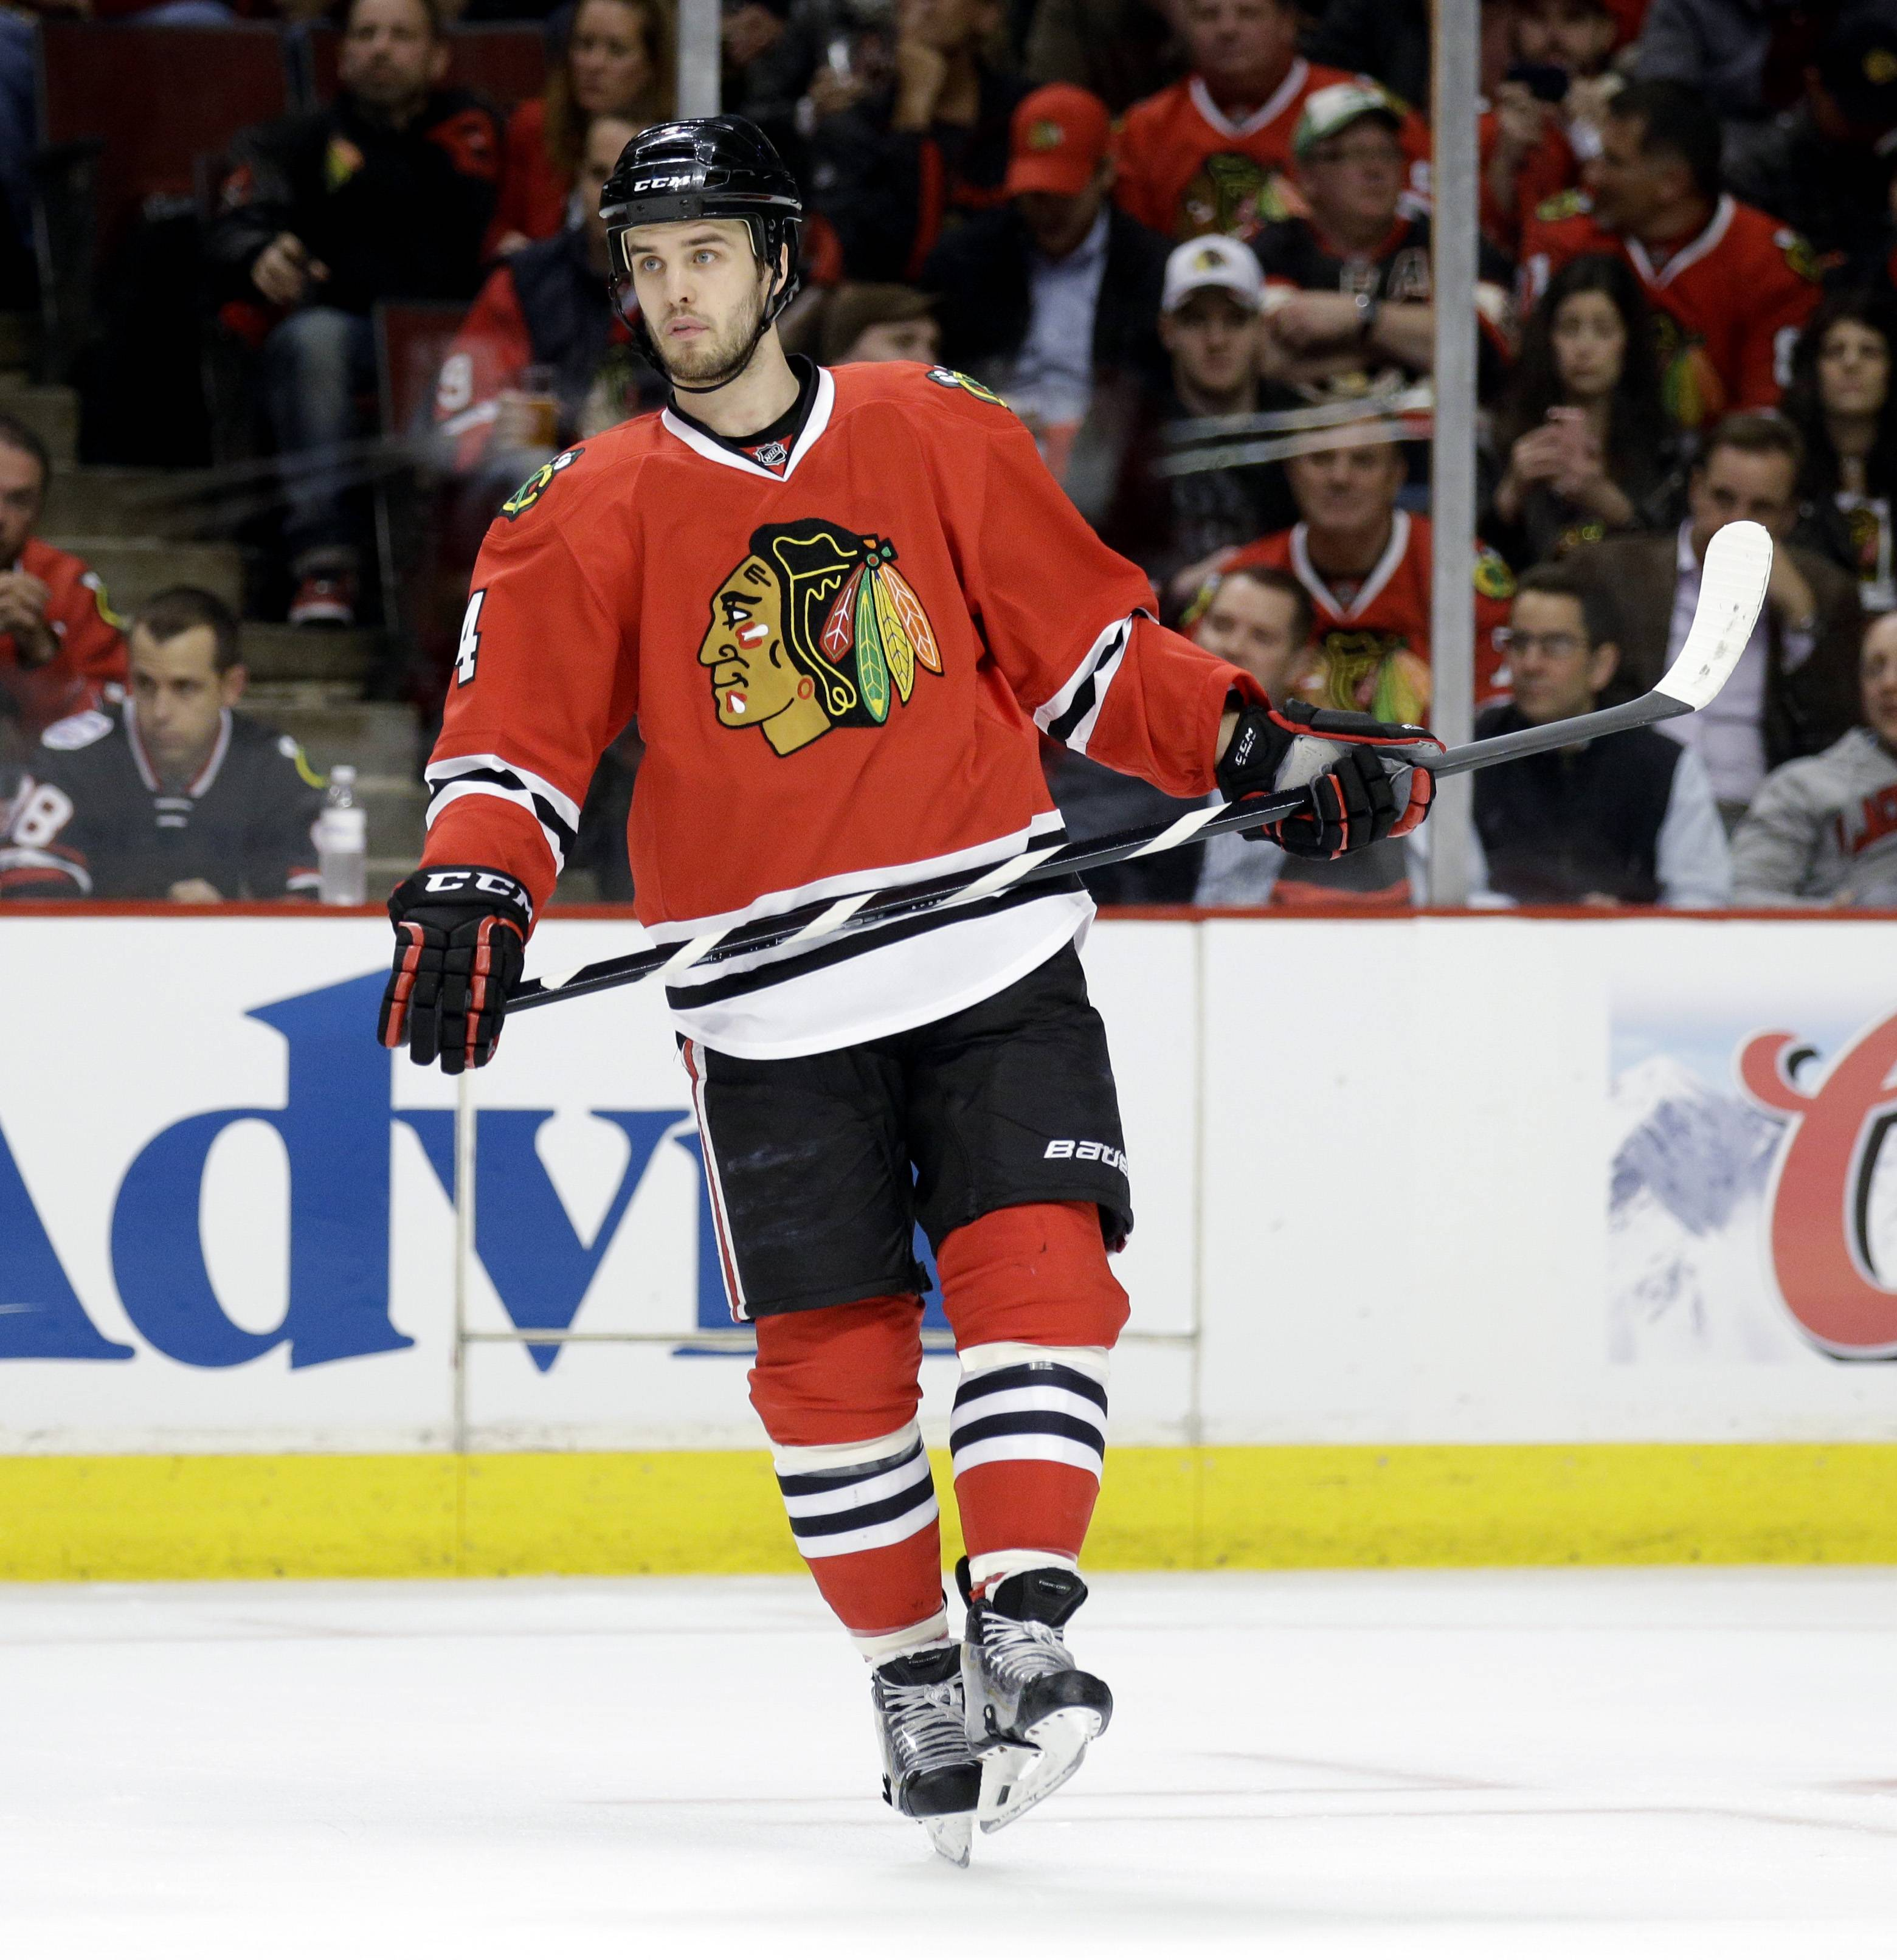 Blackhawks defenseman Niklas Hjalmarsson barely skipped a shift after being injured in the first period doing what he does best — blocking a shot.